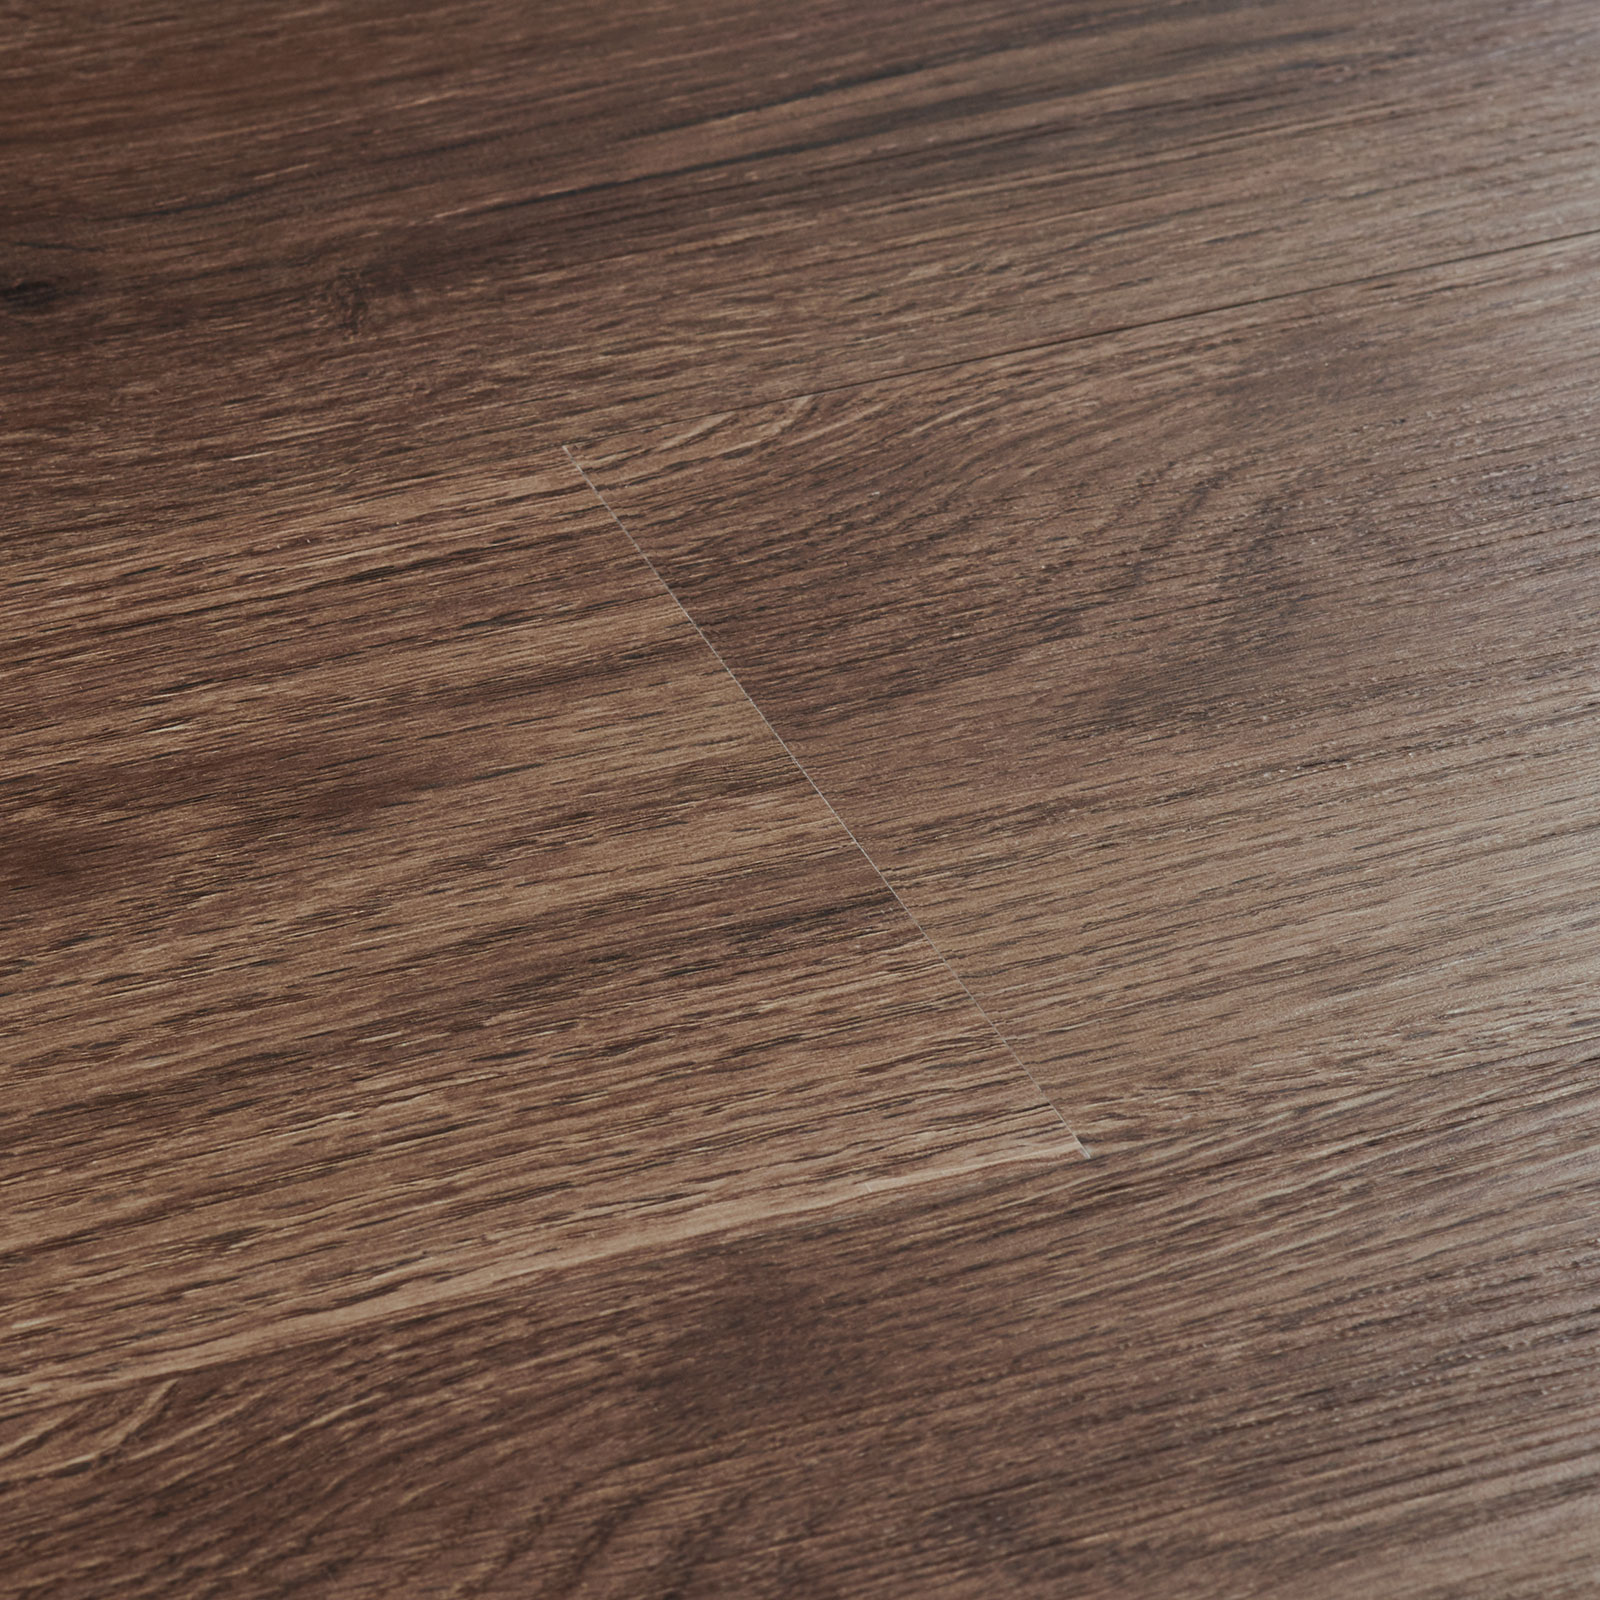 Brecon-Toasted-Oak-swatch